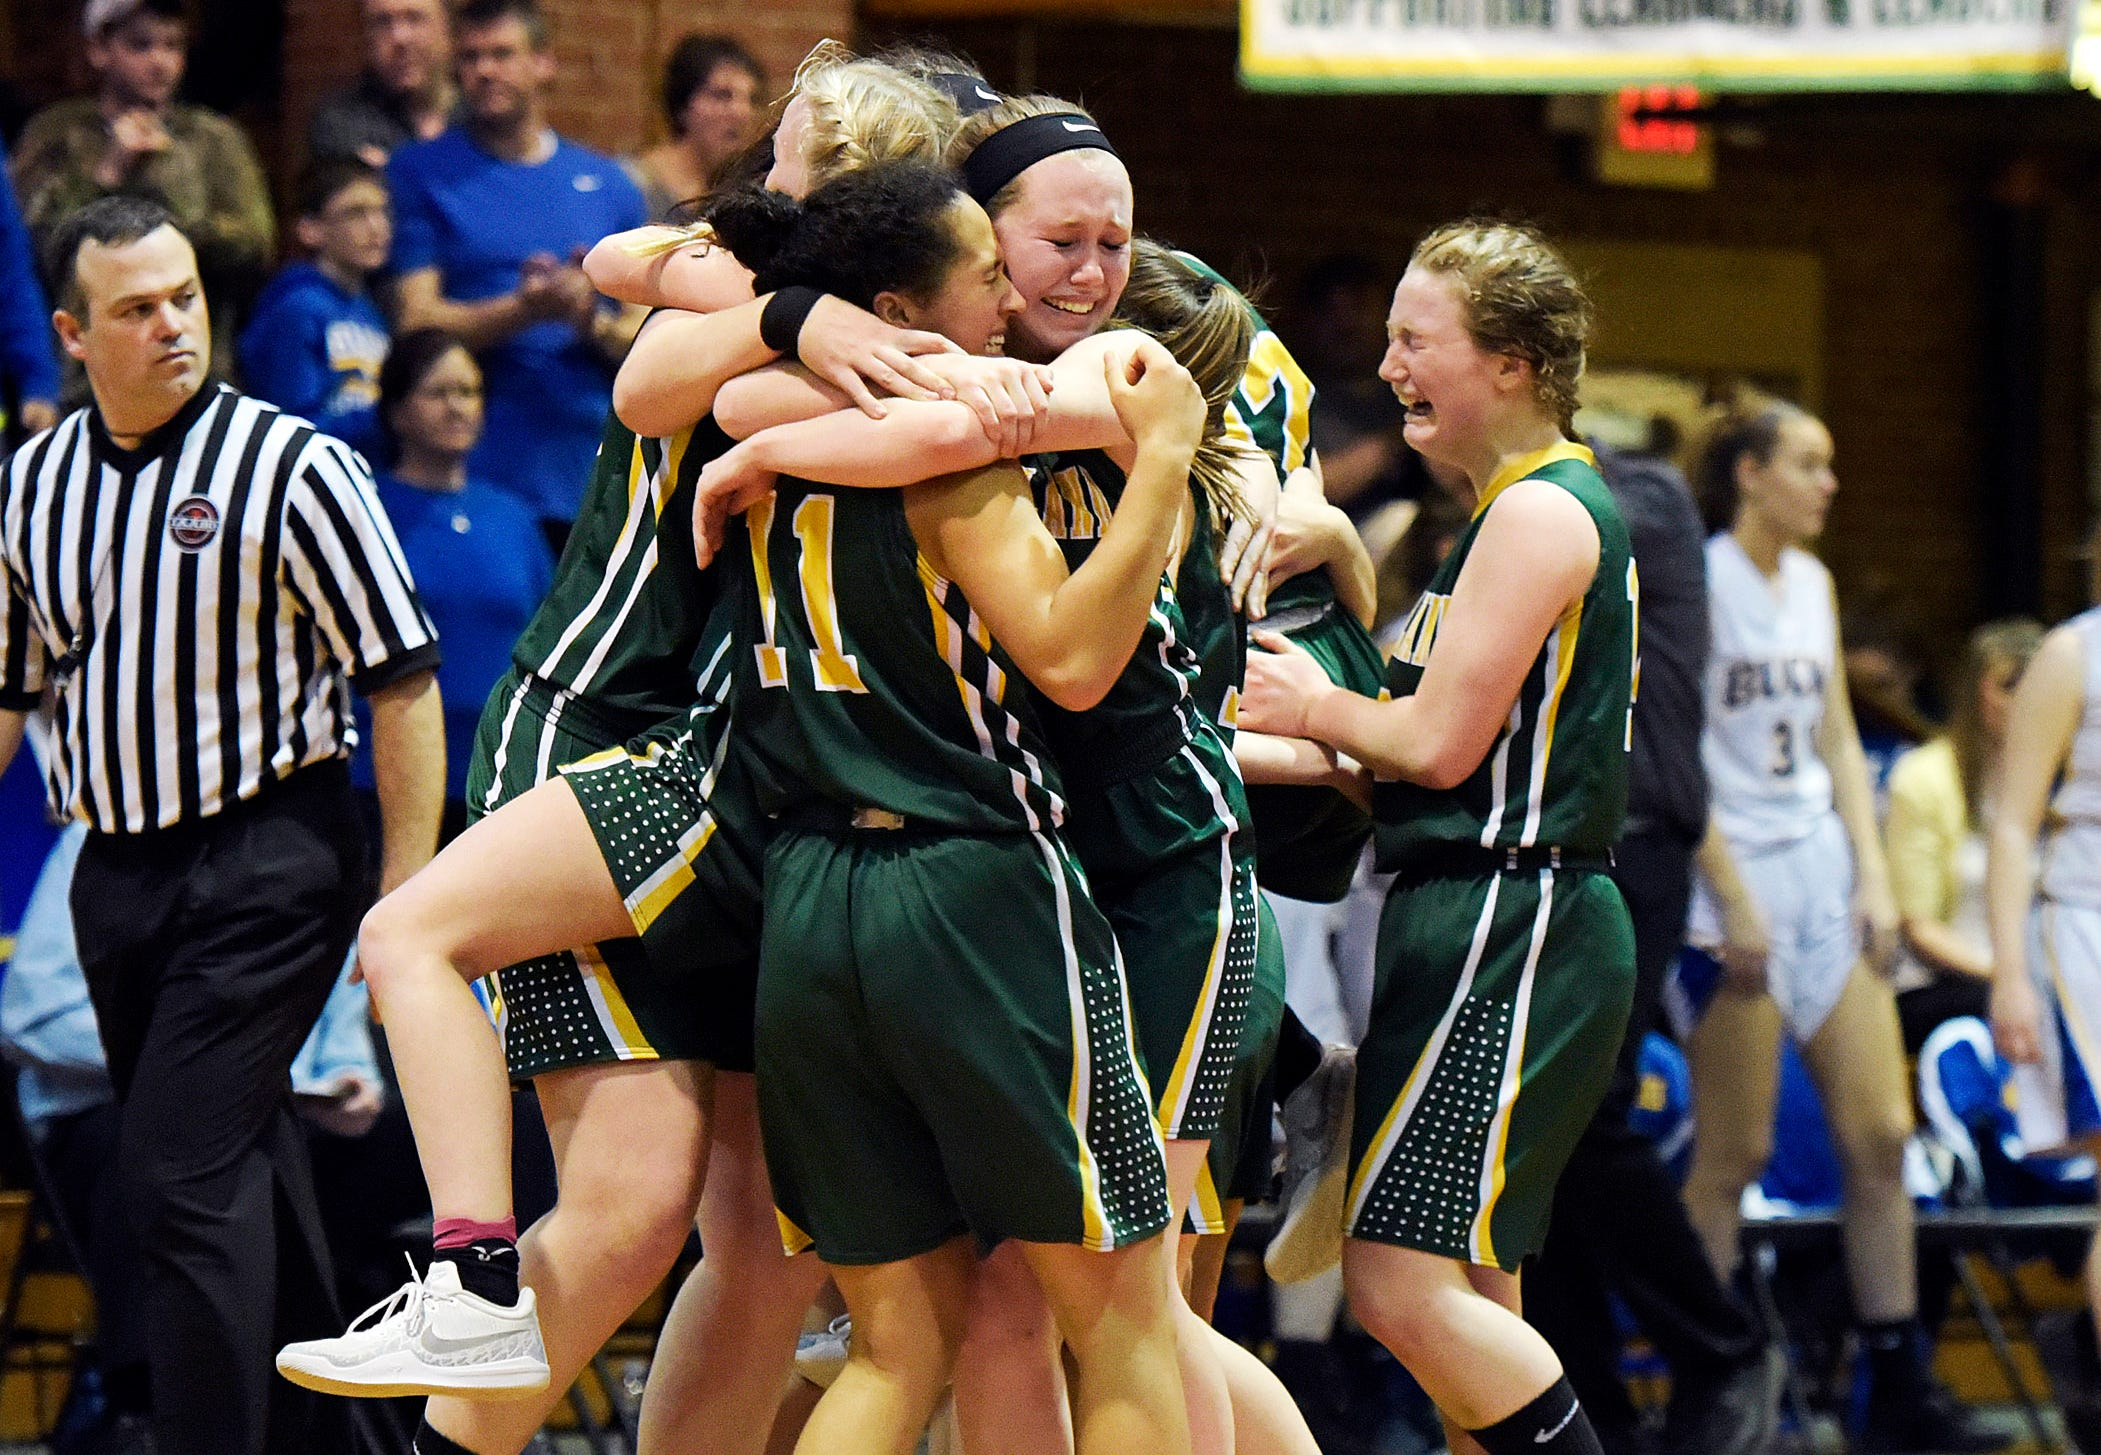 No. 3 West Rutland beats top-seeded Blue Mountain 39-33 in the Division IV championship at the Barre Aud on Saturday, March 9, 2019.